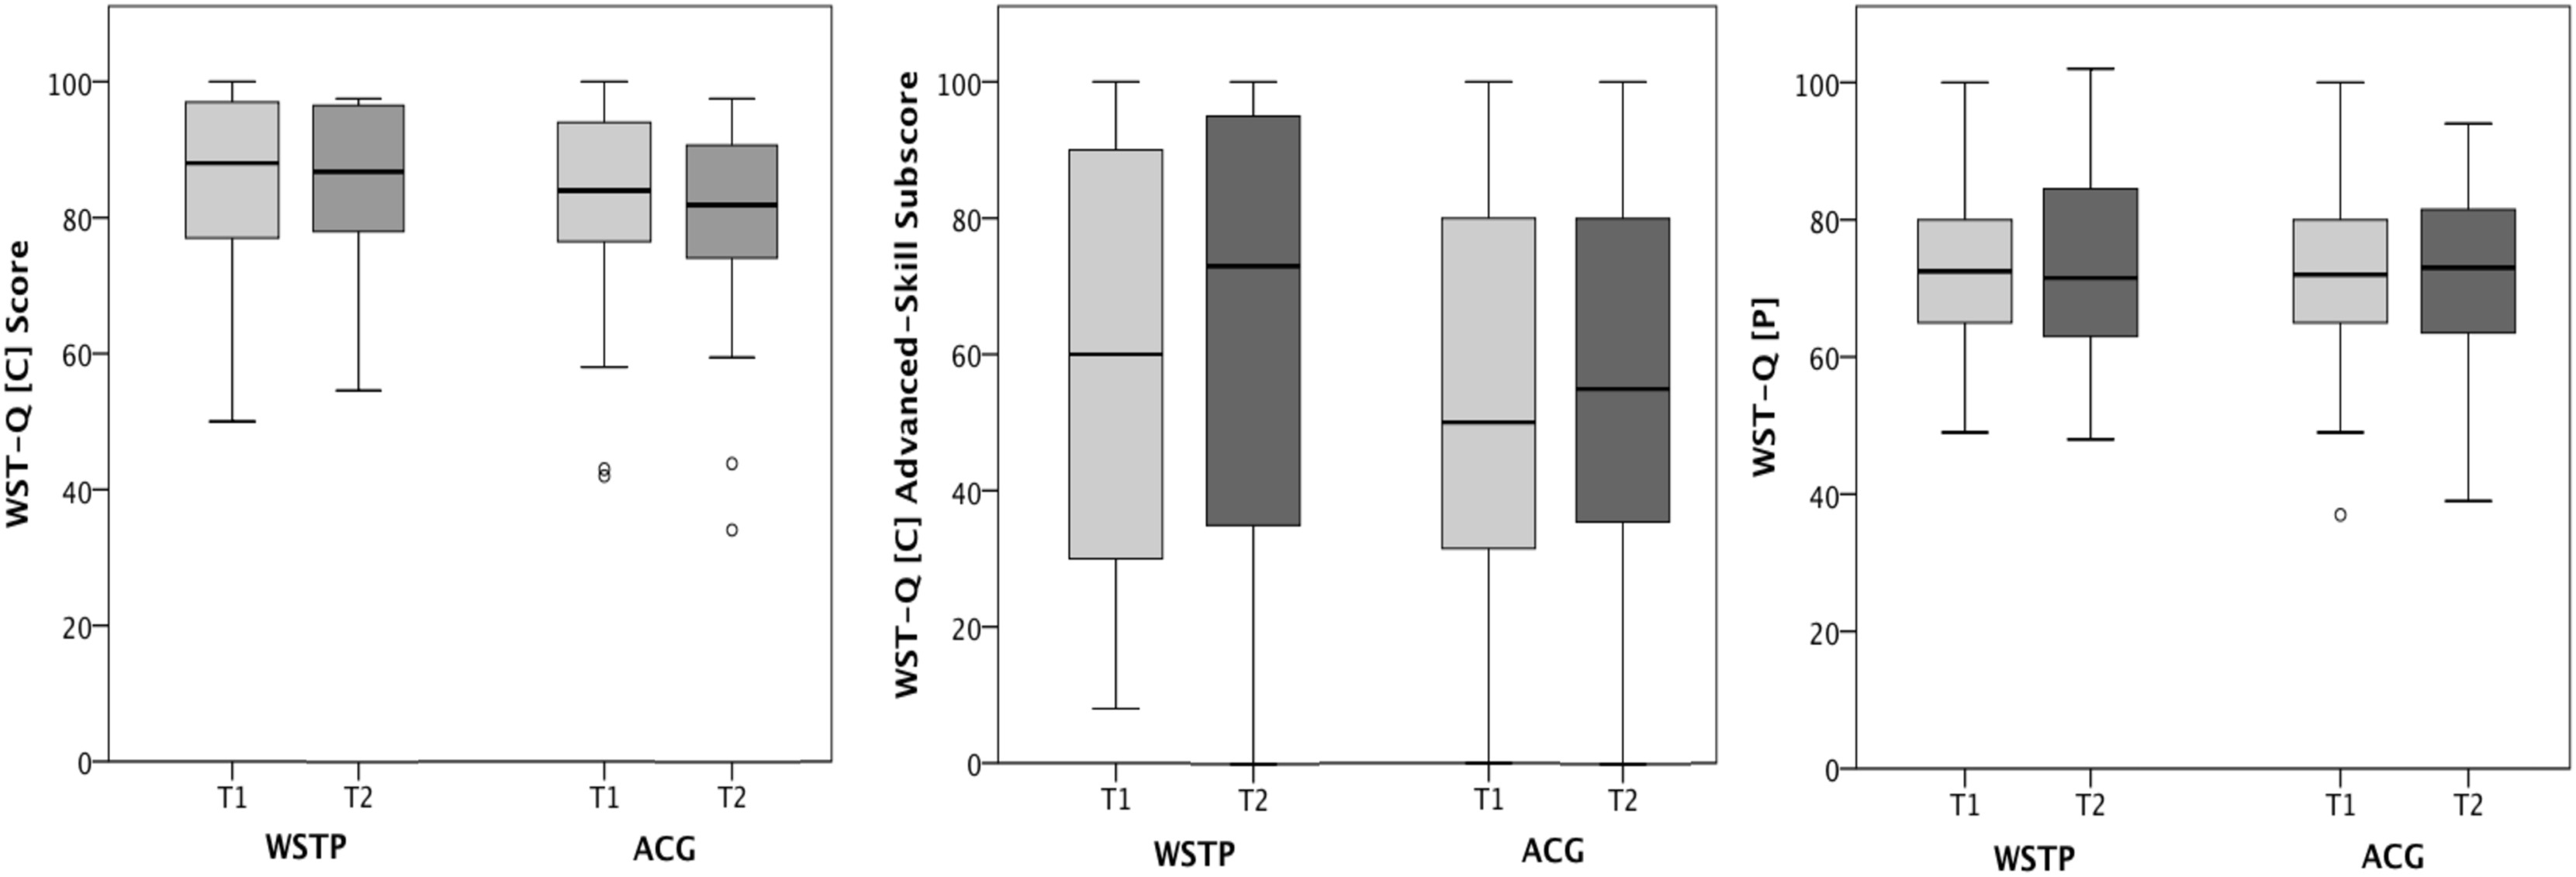 Effectiveness Of Group Wheelchair Skills Training For People With Spinal Cord Injury A